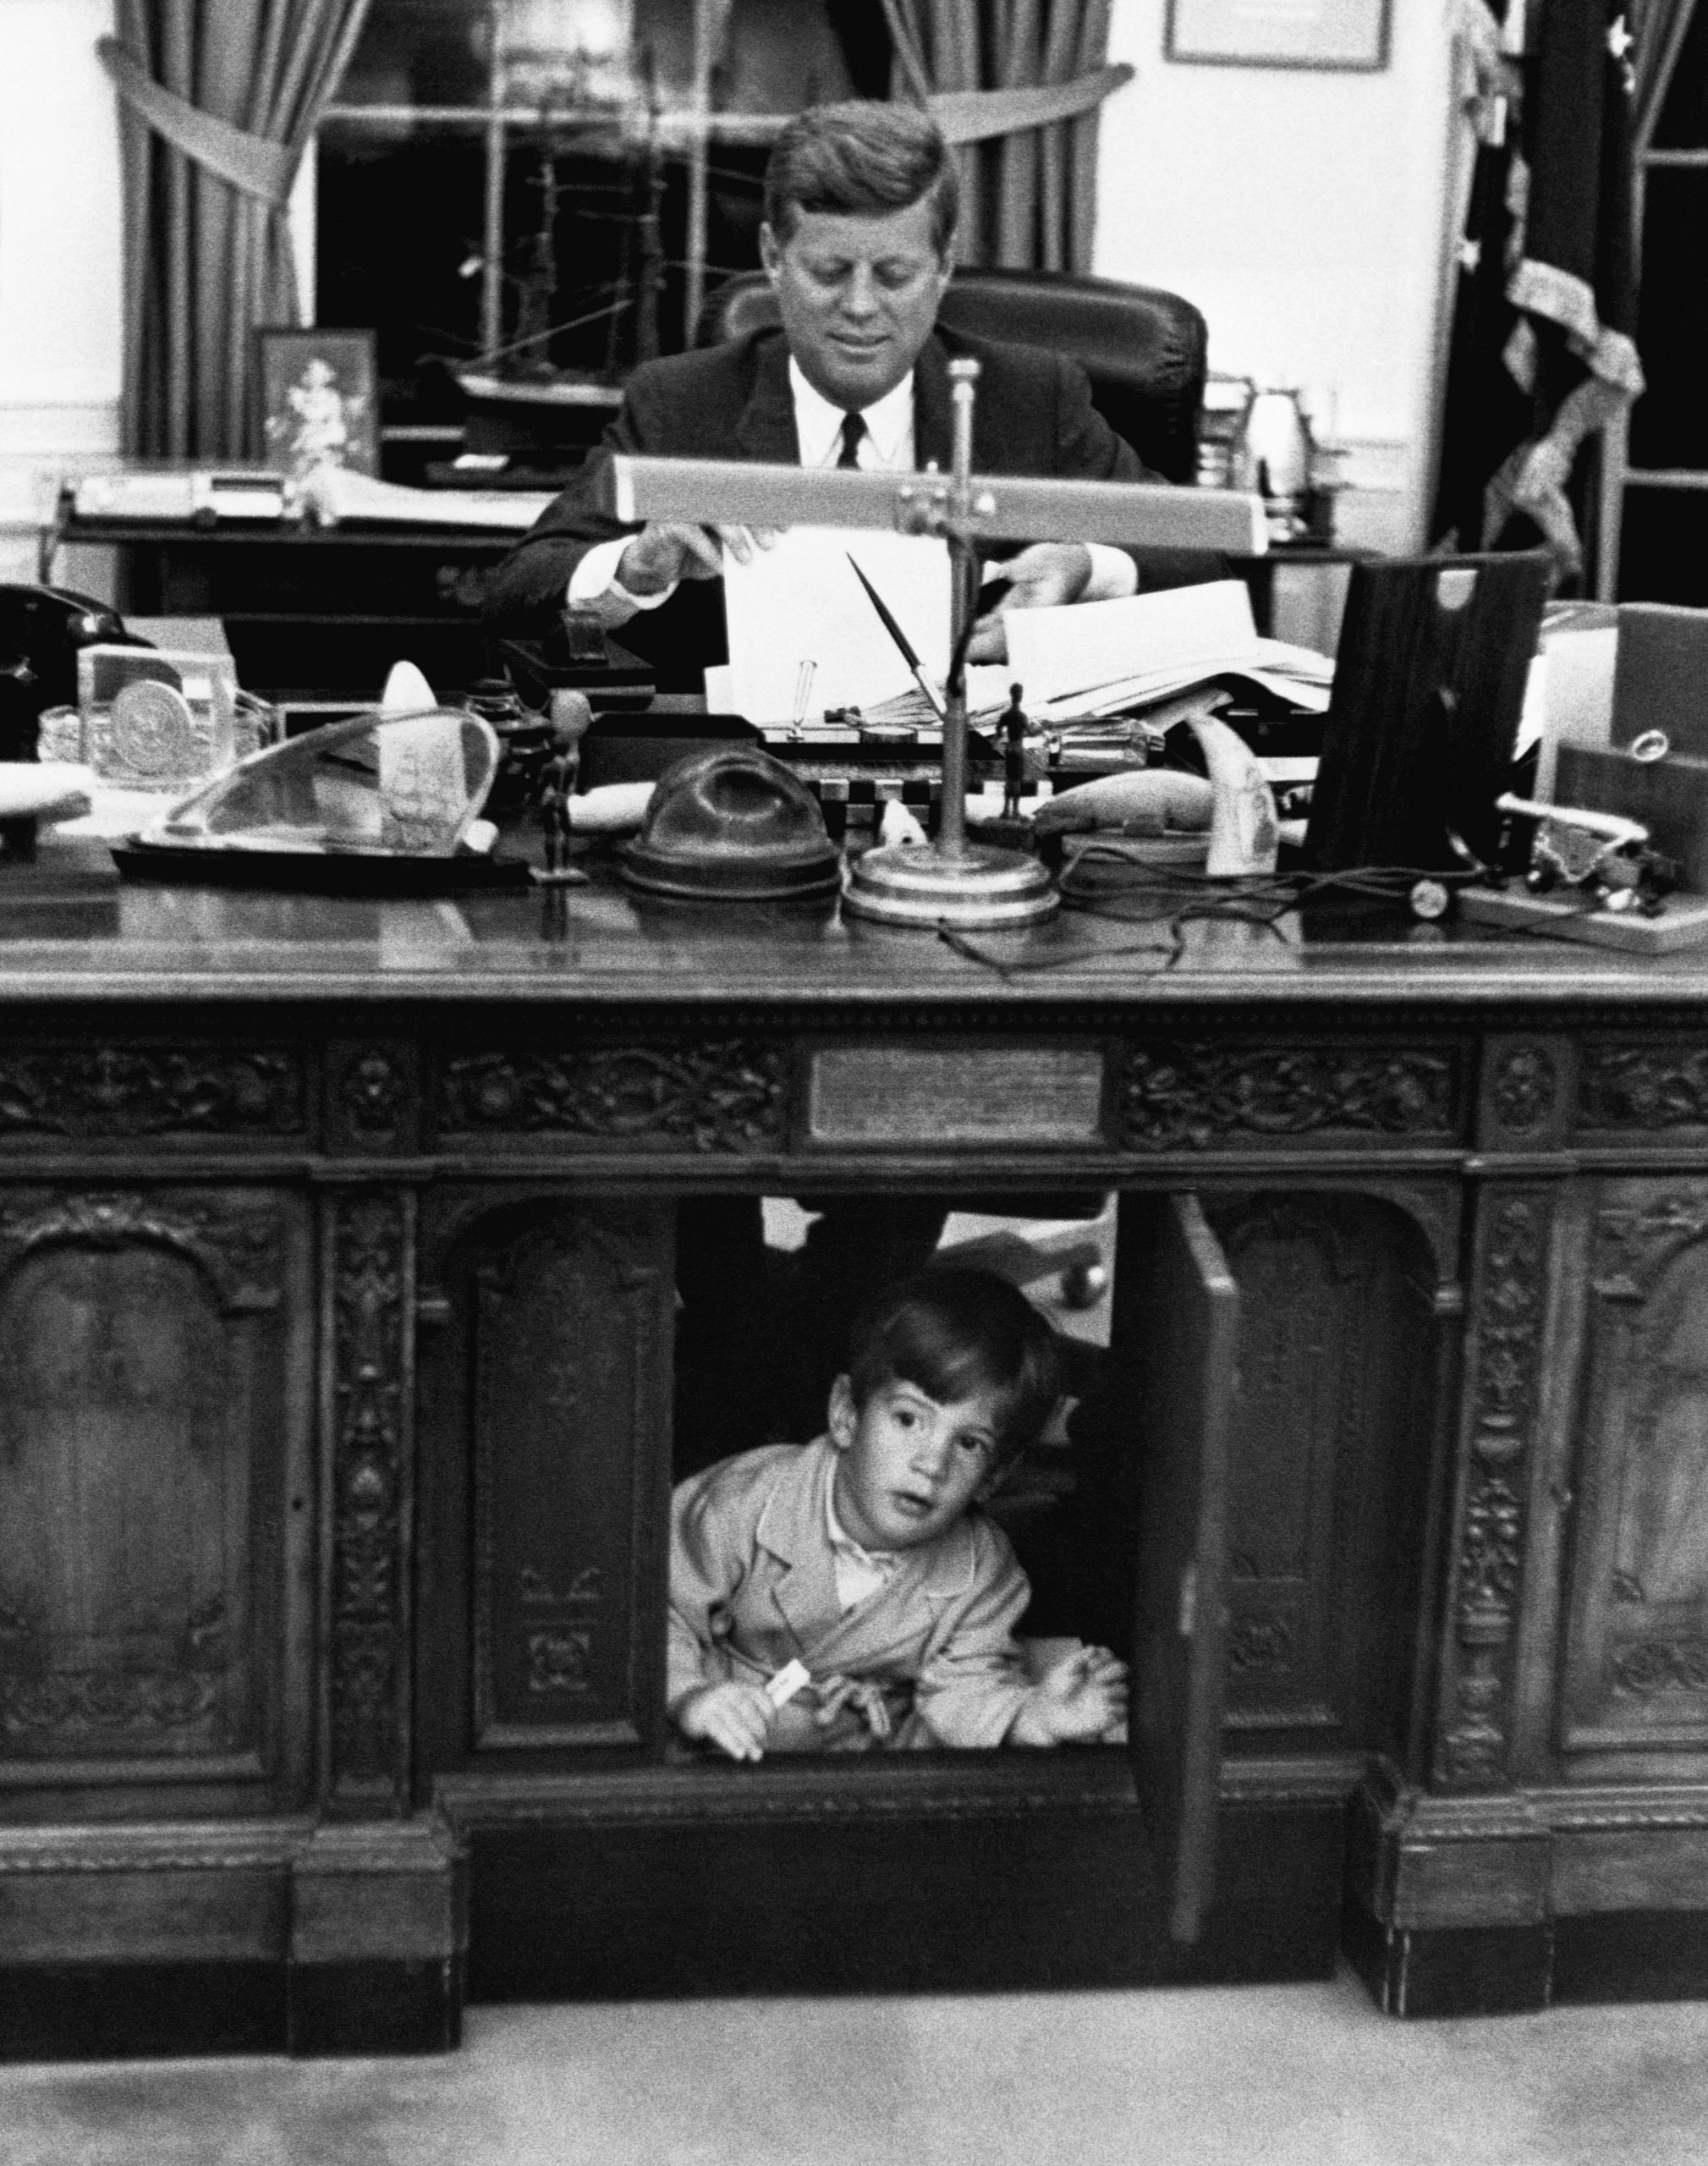 Pres. John F. Kennedy playing w. his son John F. Kennedy Jr. at his desk in the Oval Office. 1963.